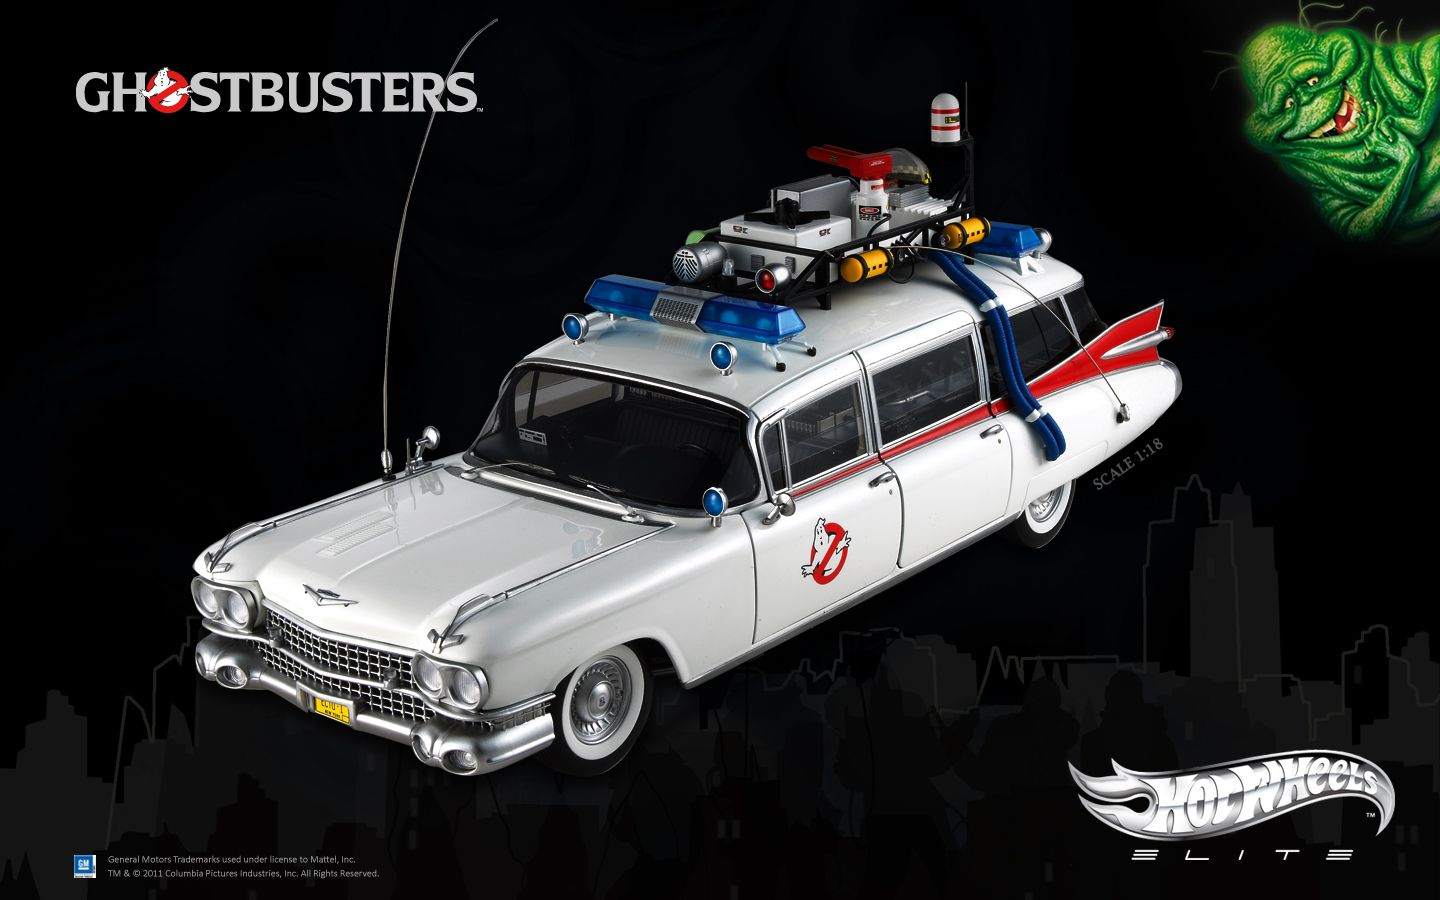 pin by zerothdegree levvi on ghostbusters hot wheels. Black Bedroom Furniture Sets. Home Design Ideas